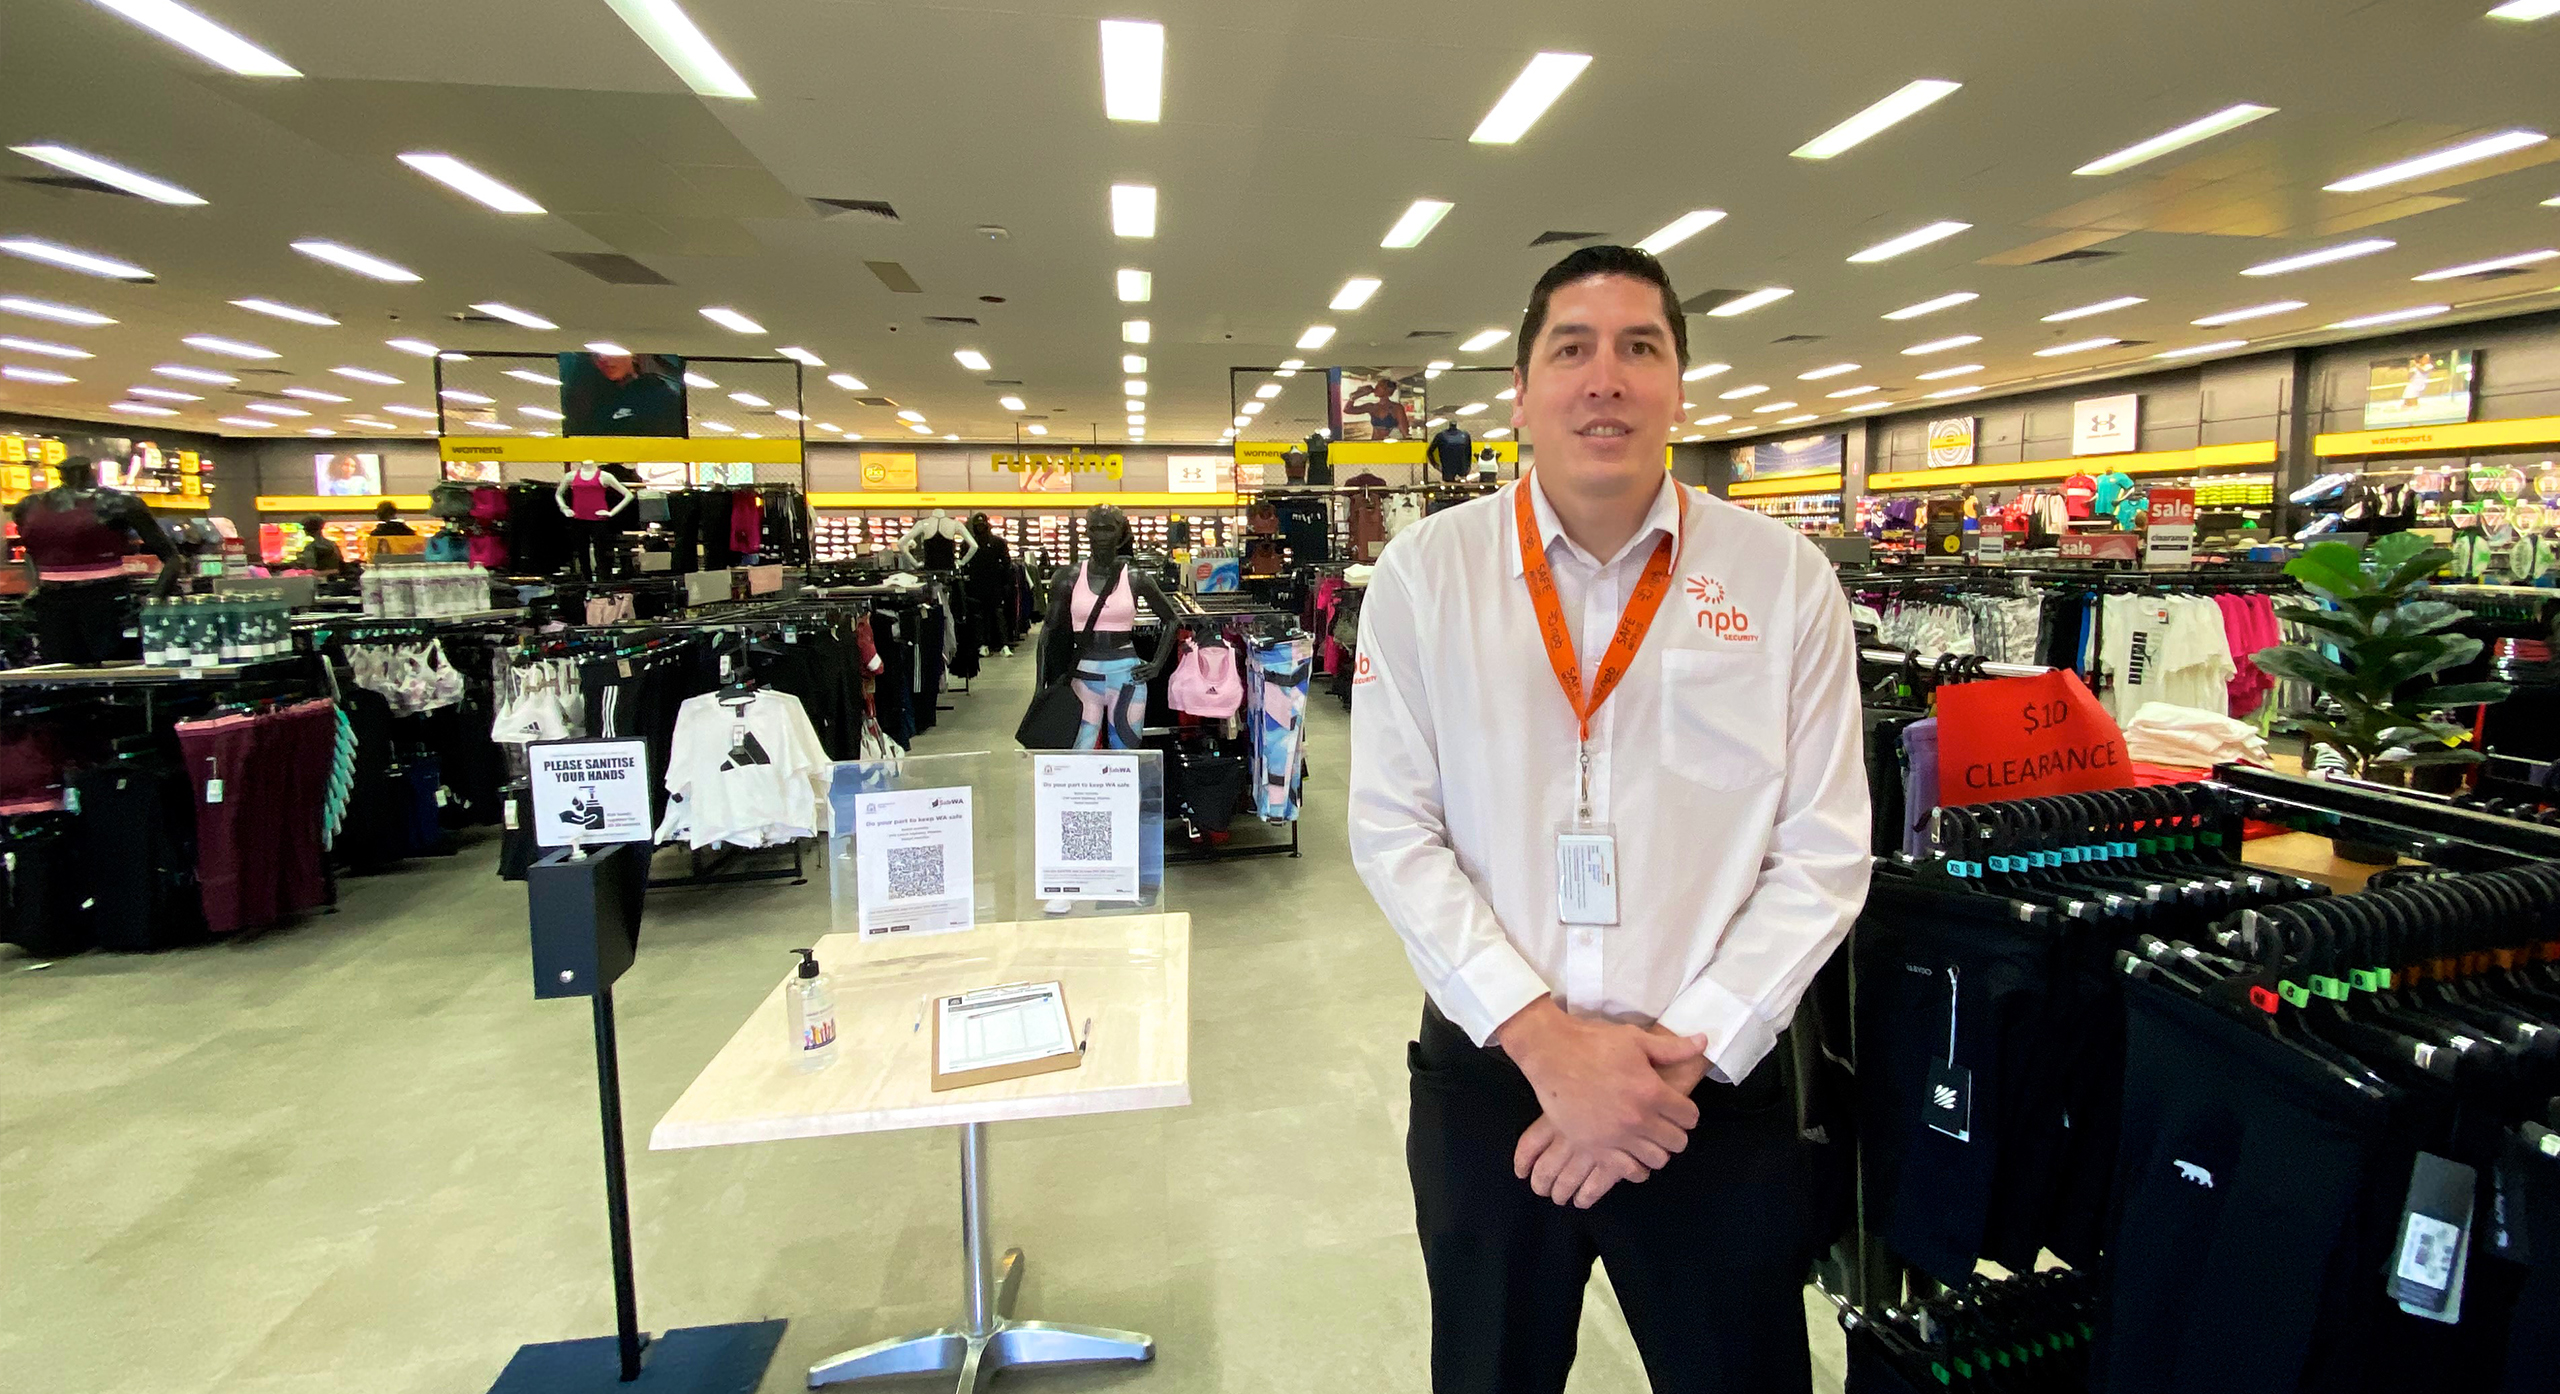 Upskilling critical for keeping watch over State's largest retailers